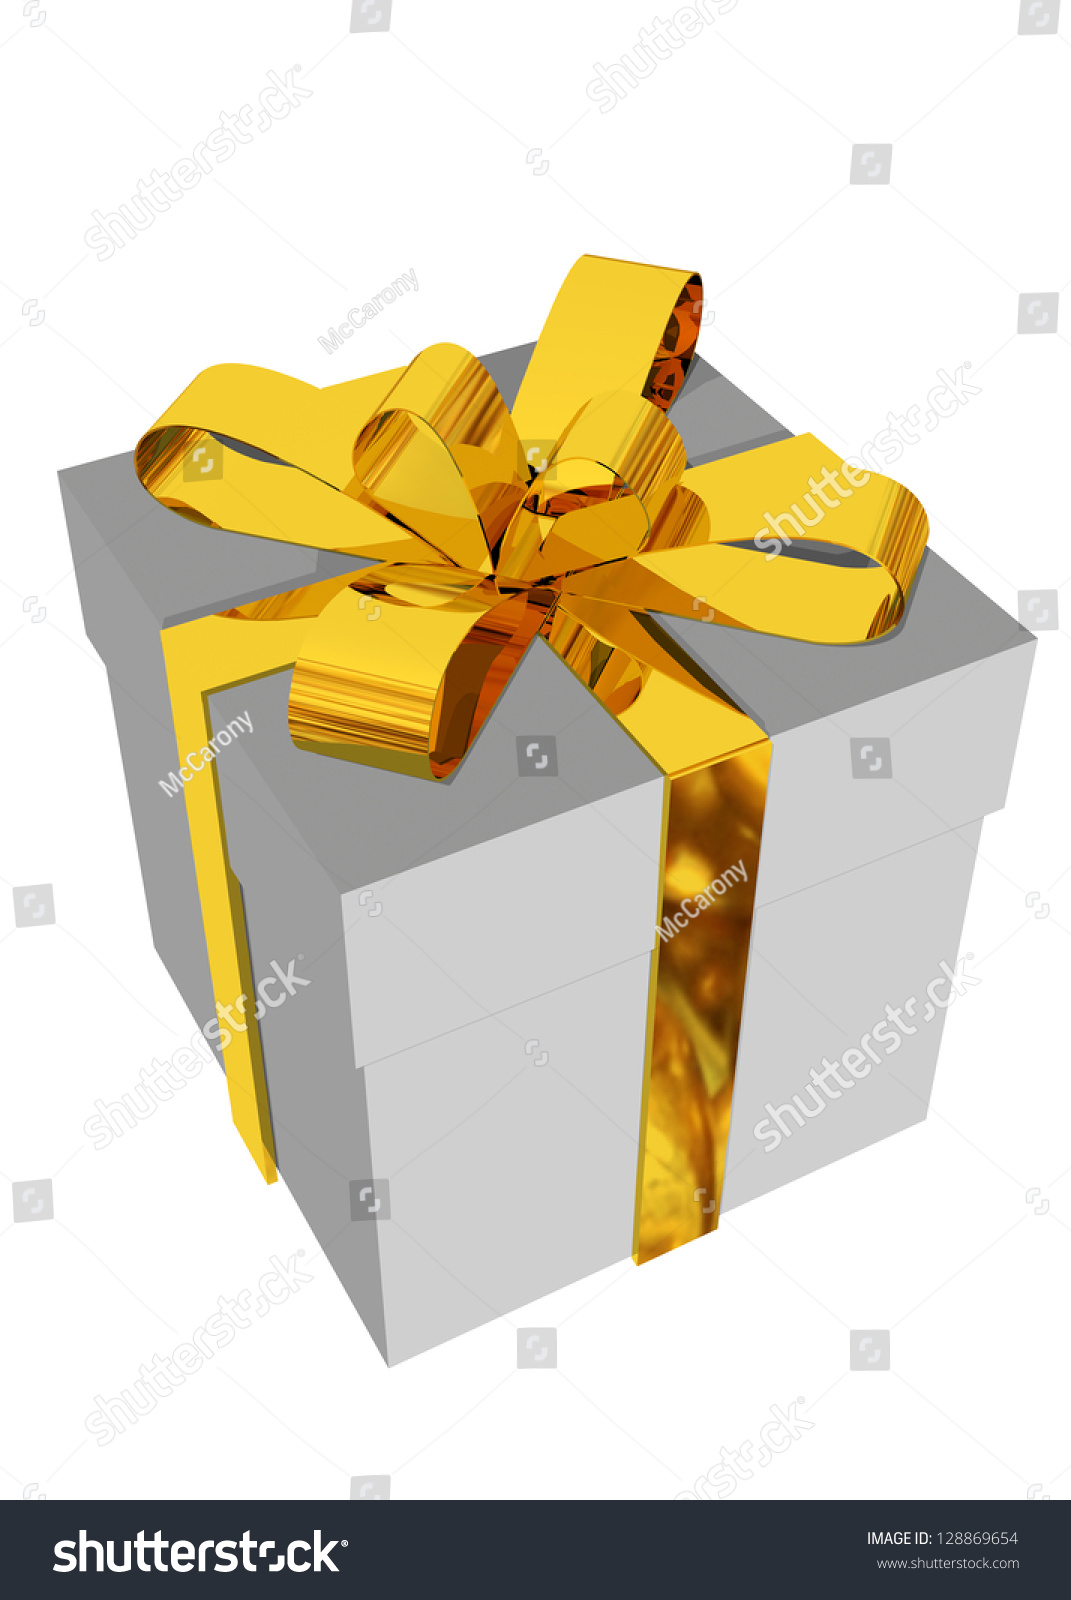 Gift packet 3d stock illustration 128869654 shutterstock gift packet 3d negle Choice Image